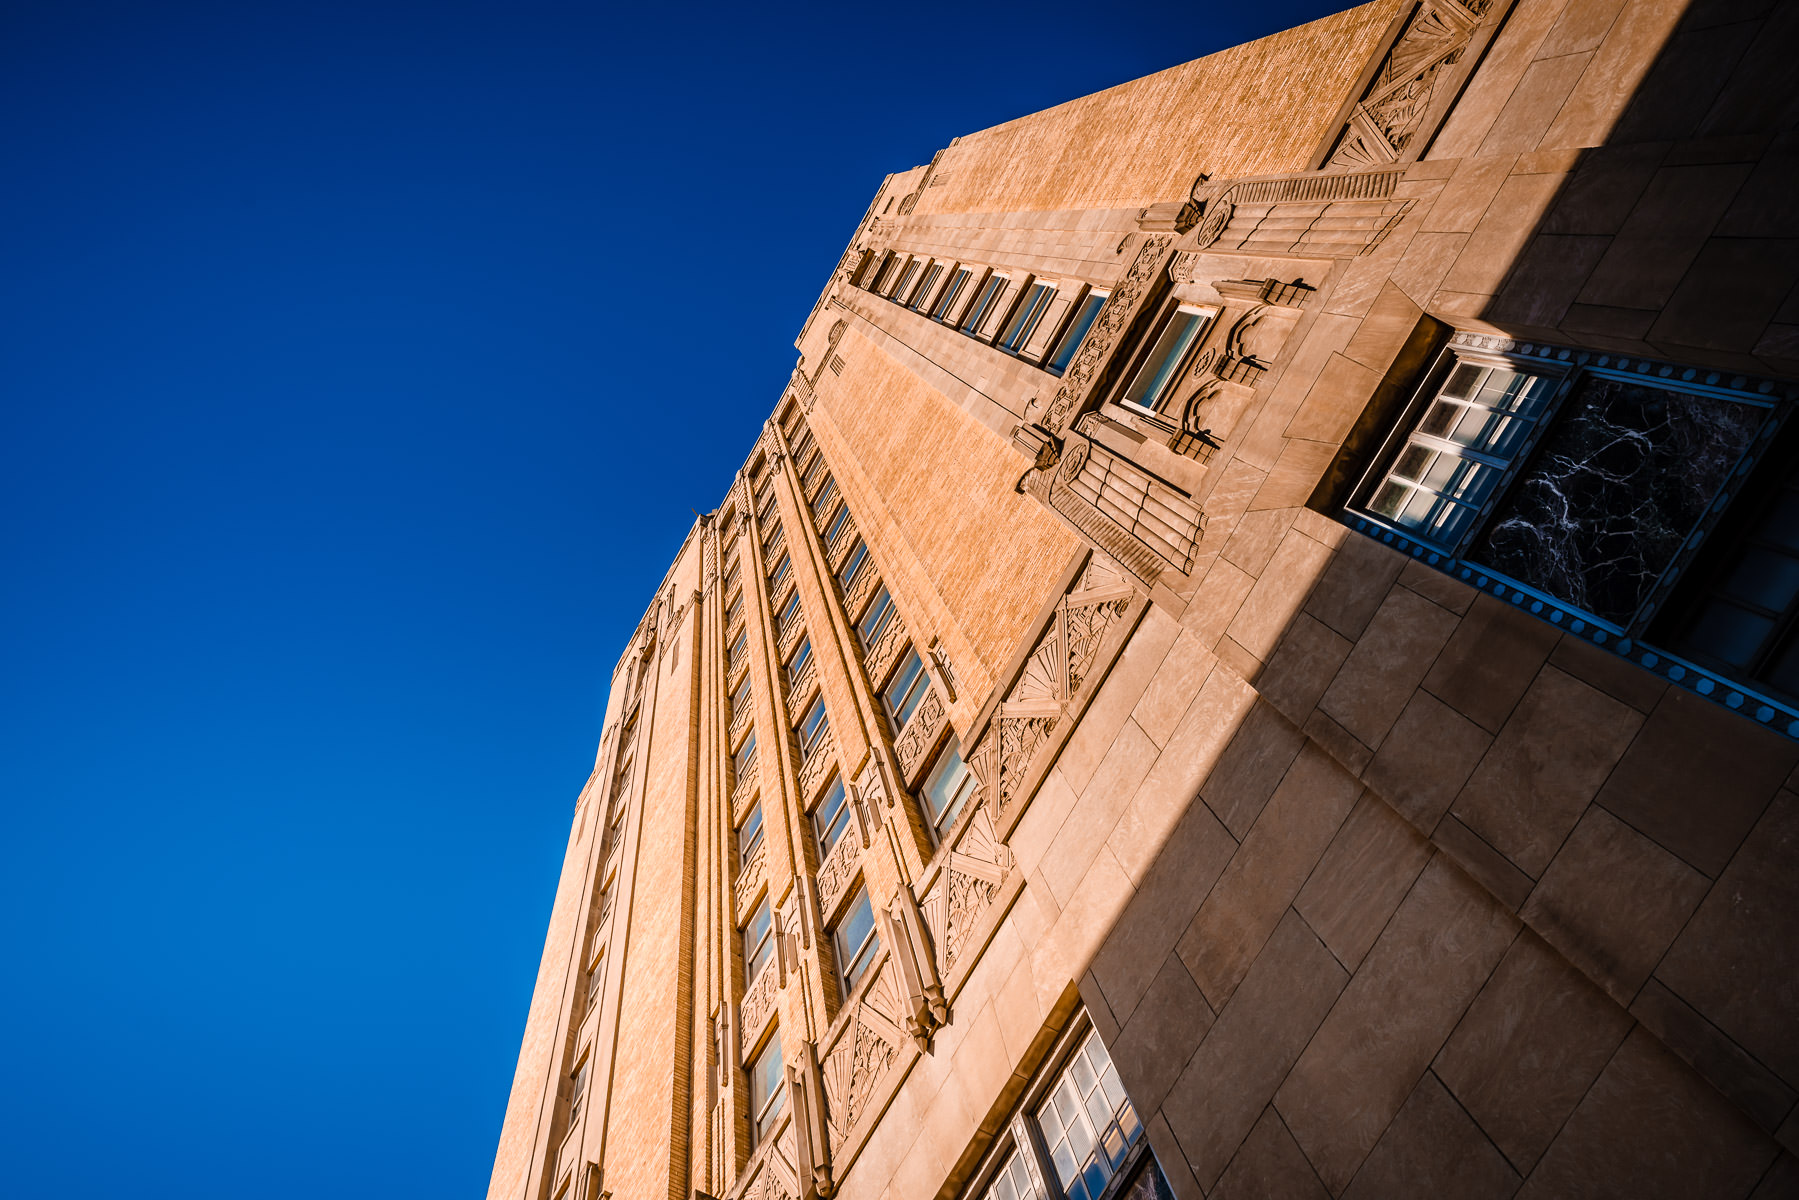 Architectural detail of Fort Worth, Texas' T&P Station, now known as the Texas & Pacific Lofts.